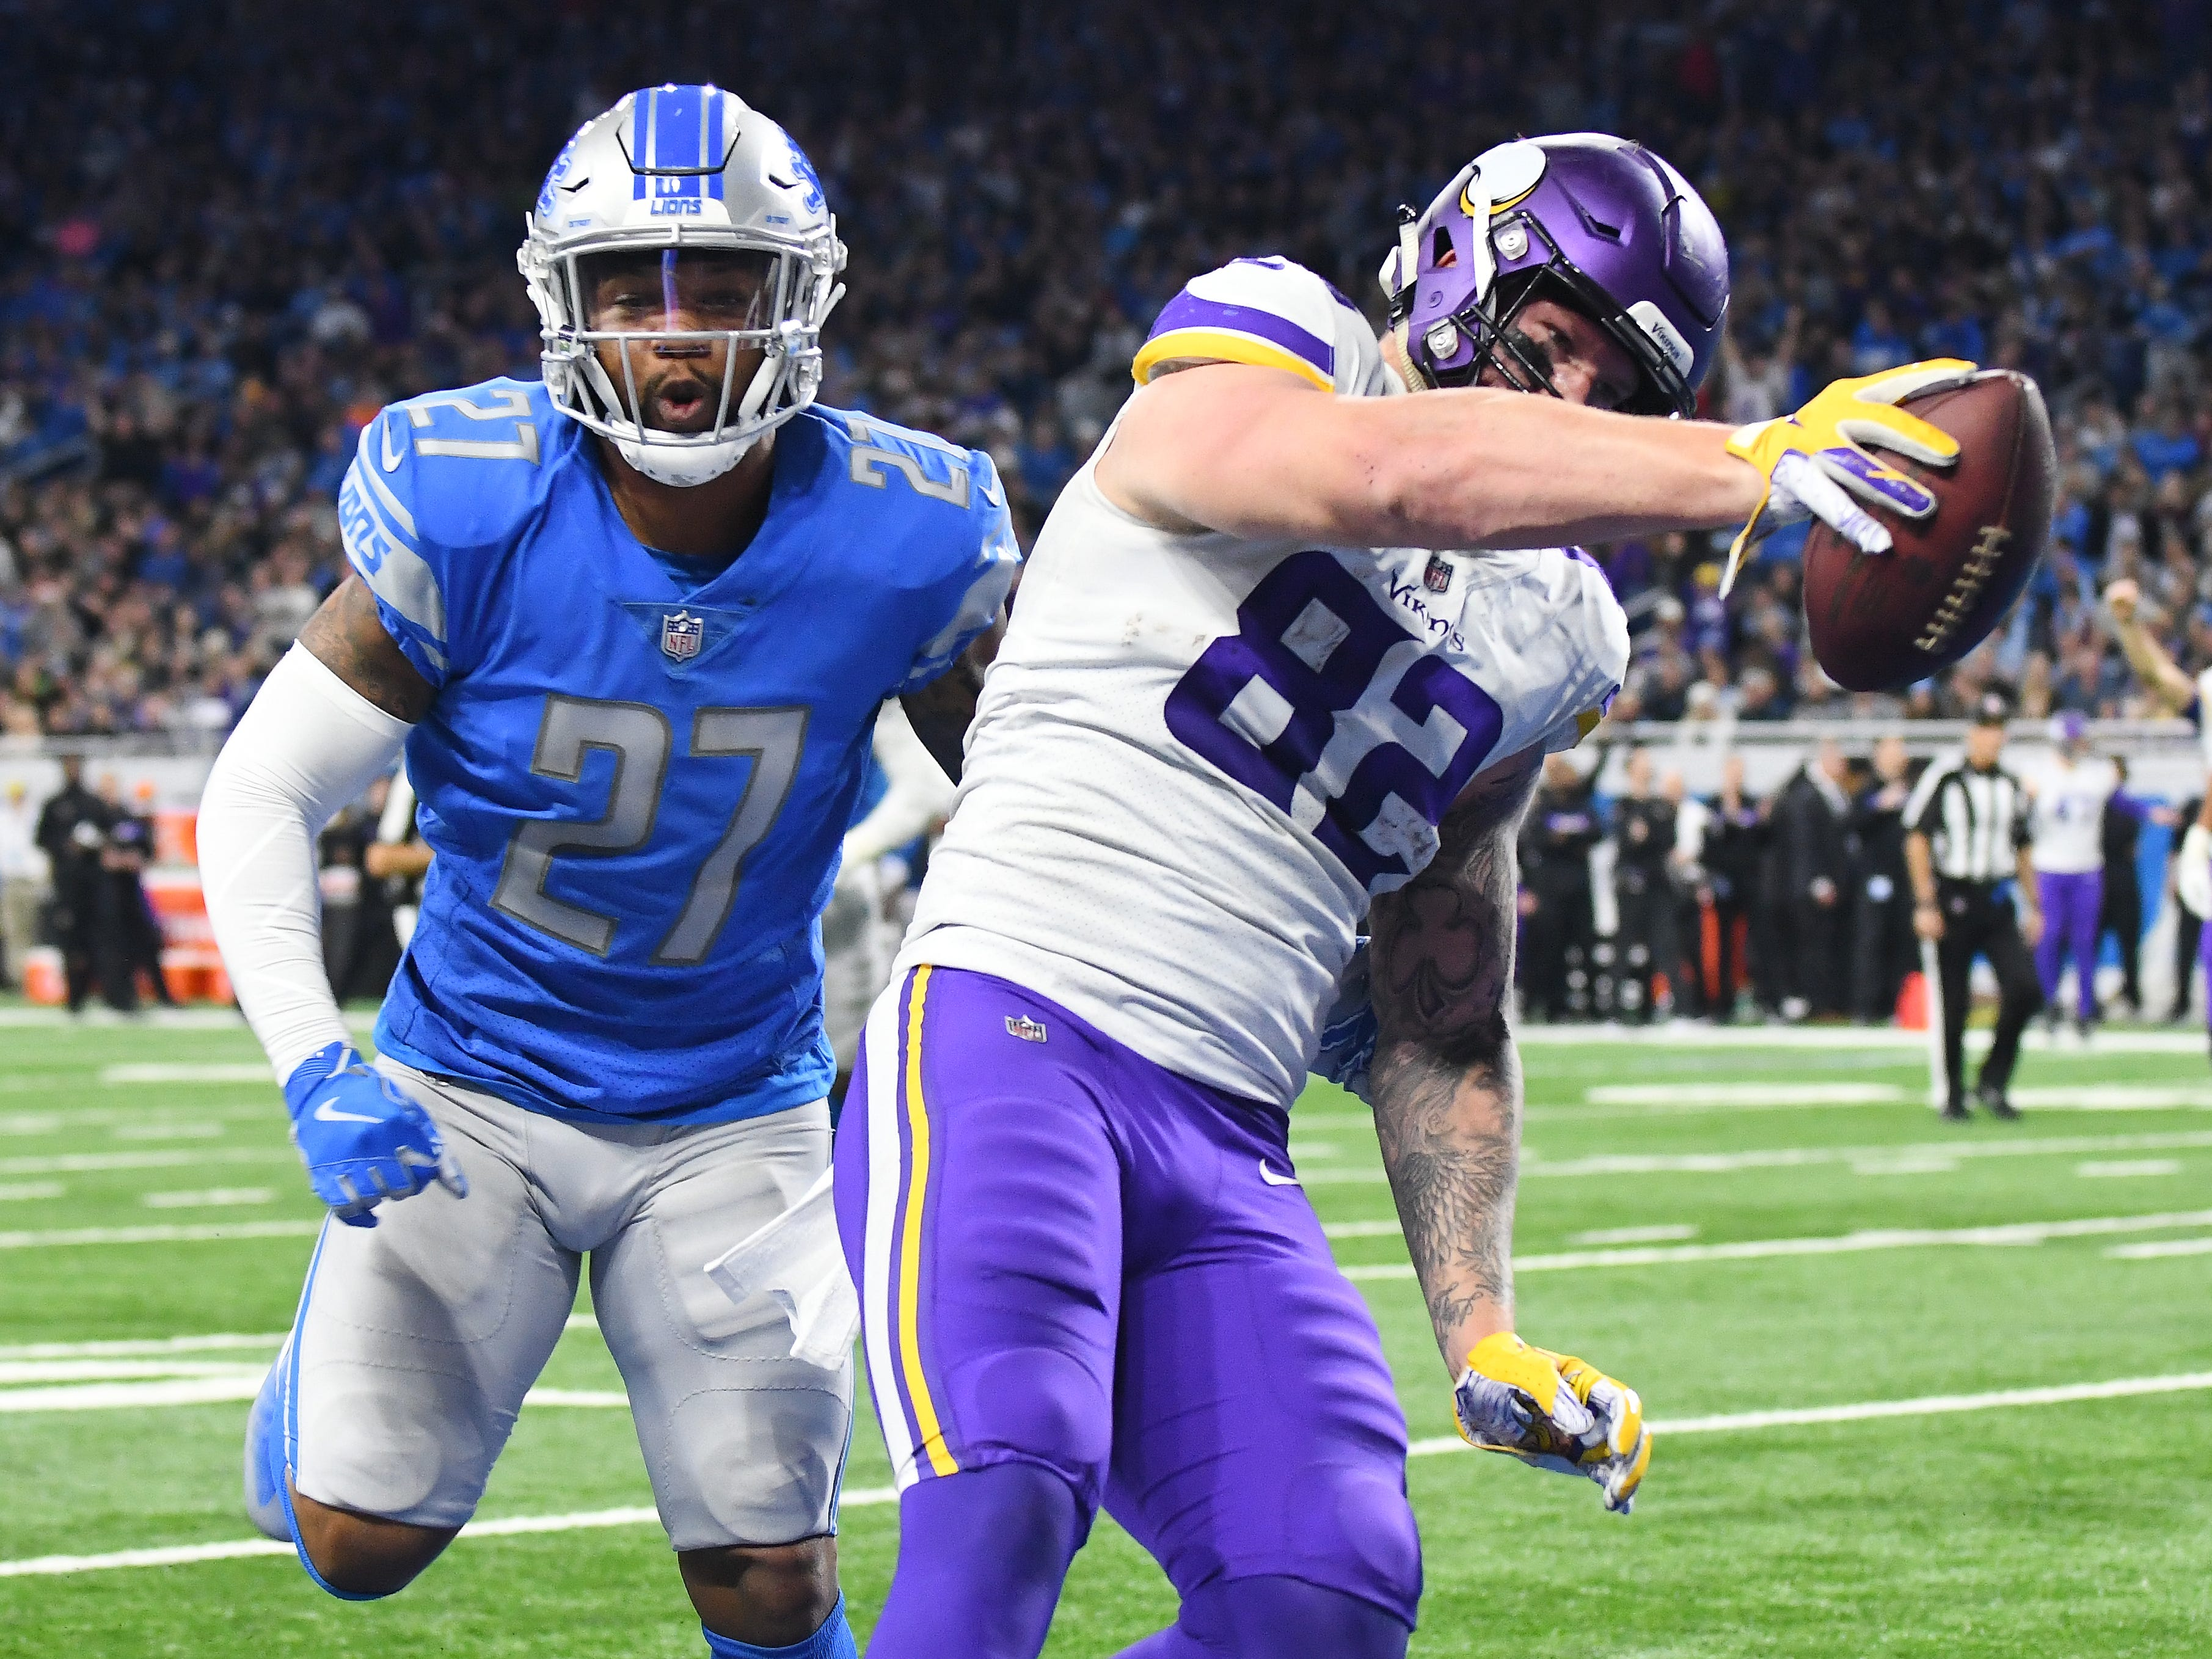 Lions' Glover Quin can't stop Vikings tight end Kyle Rudolph from going into the endzone for a touchdown in the fourth quarter.